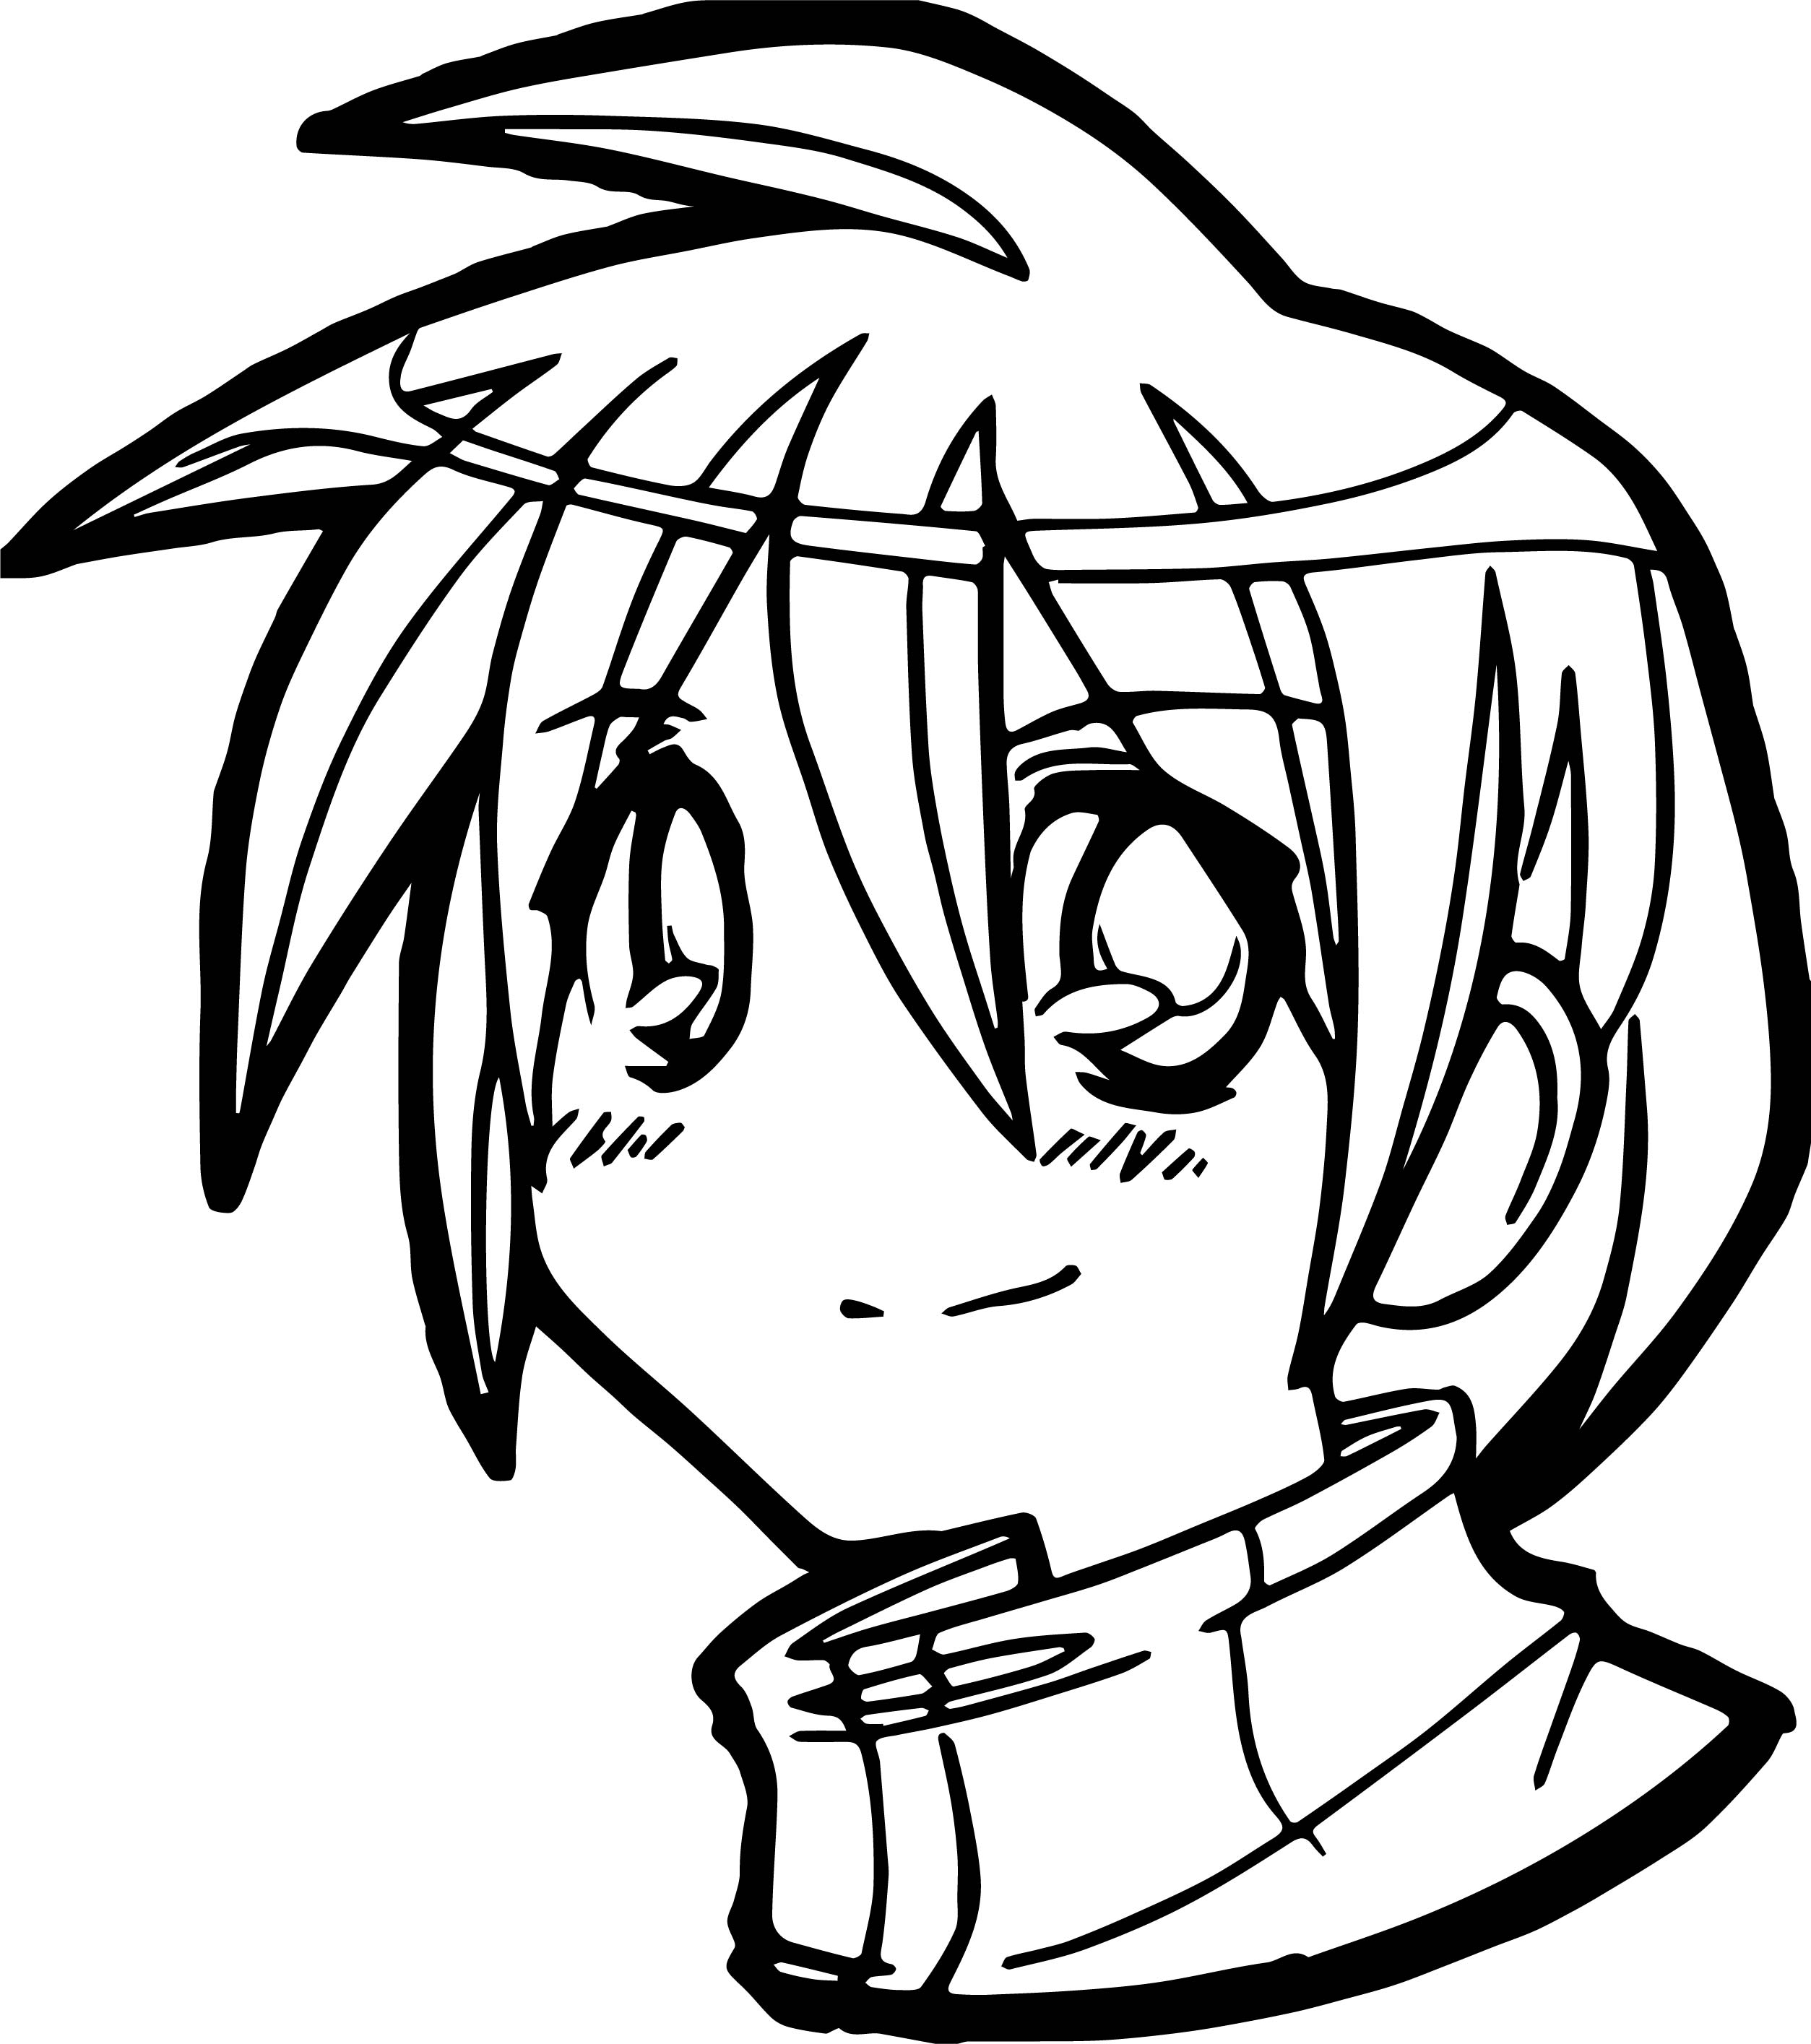 anime girl face coloring pages anime face coloring pages coloring anime girl face pages